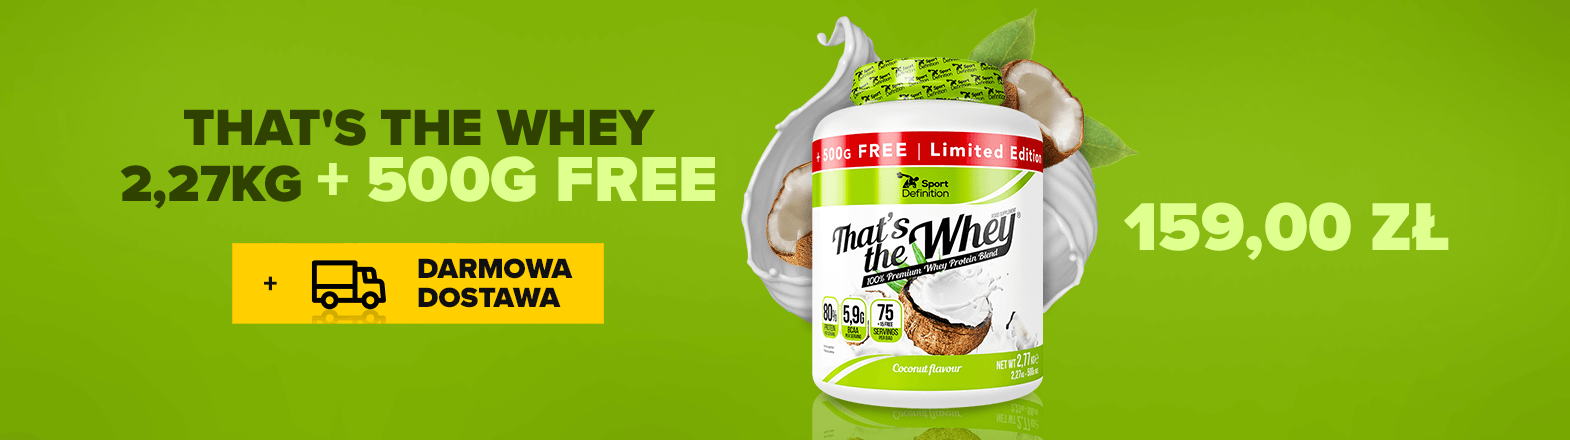 SPORT DEFINITION THAT IS THE WHEY 2.27 KG + 500G FREE